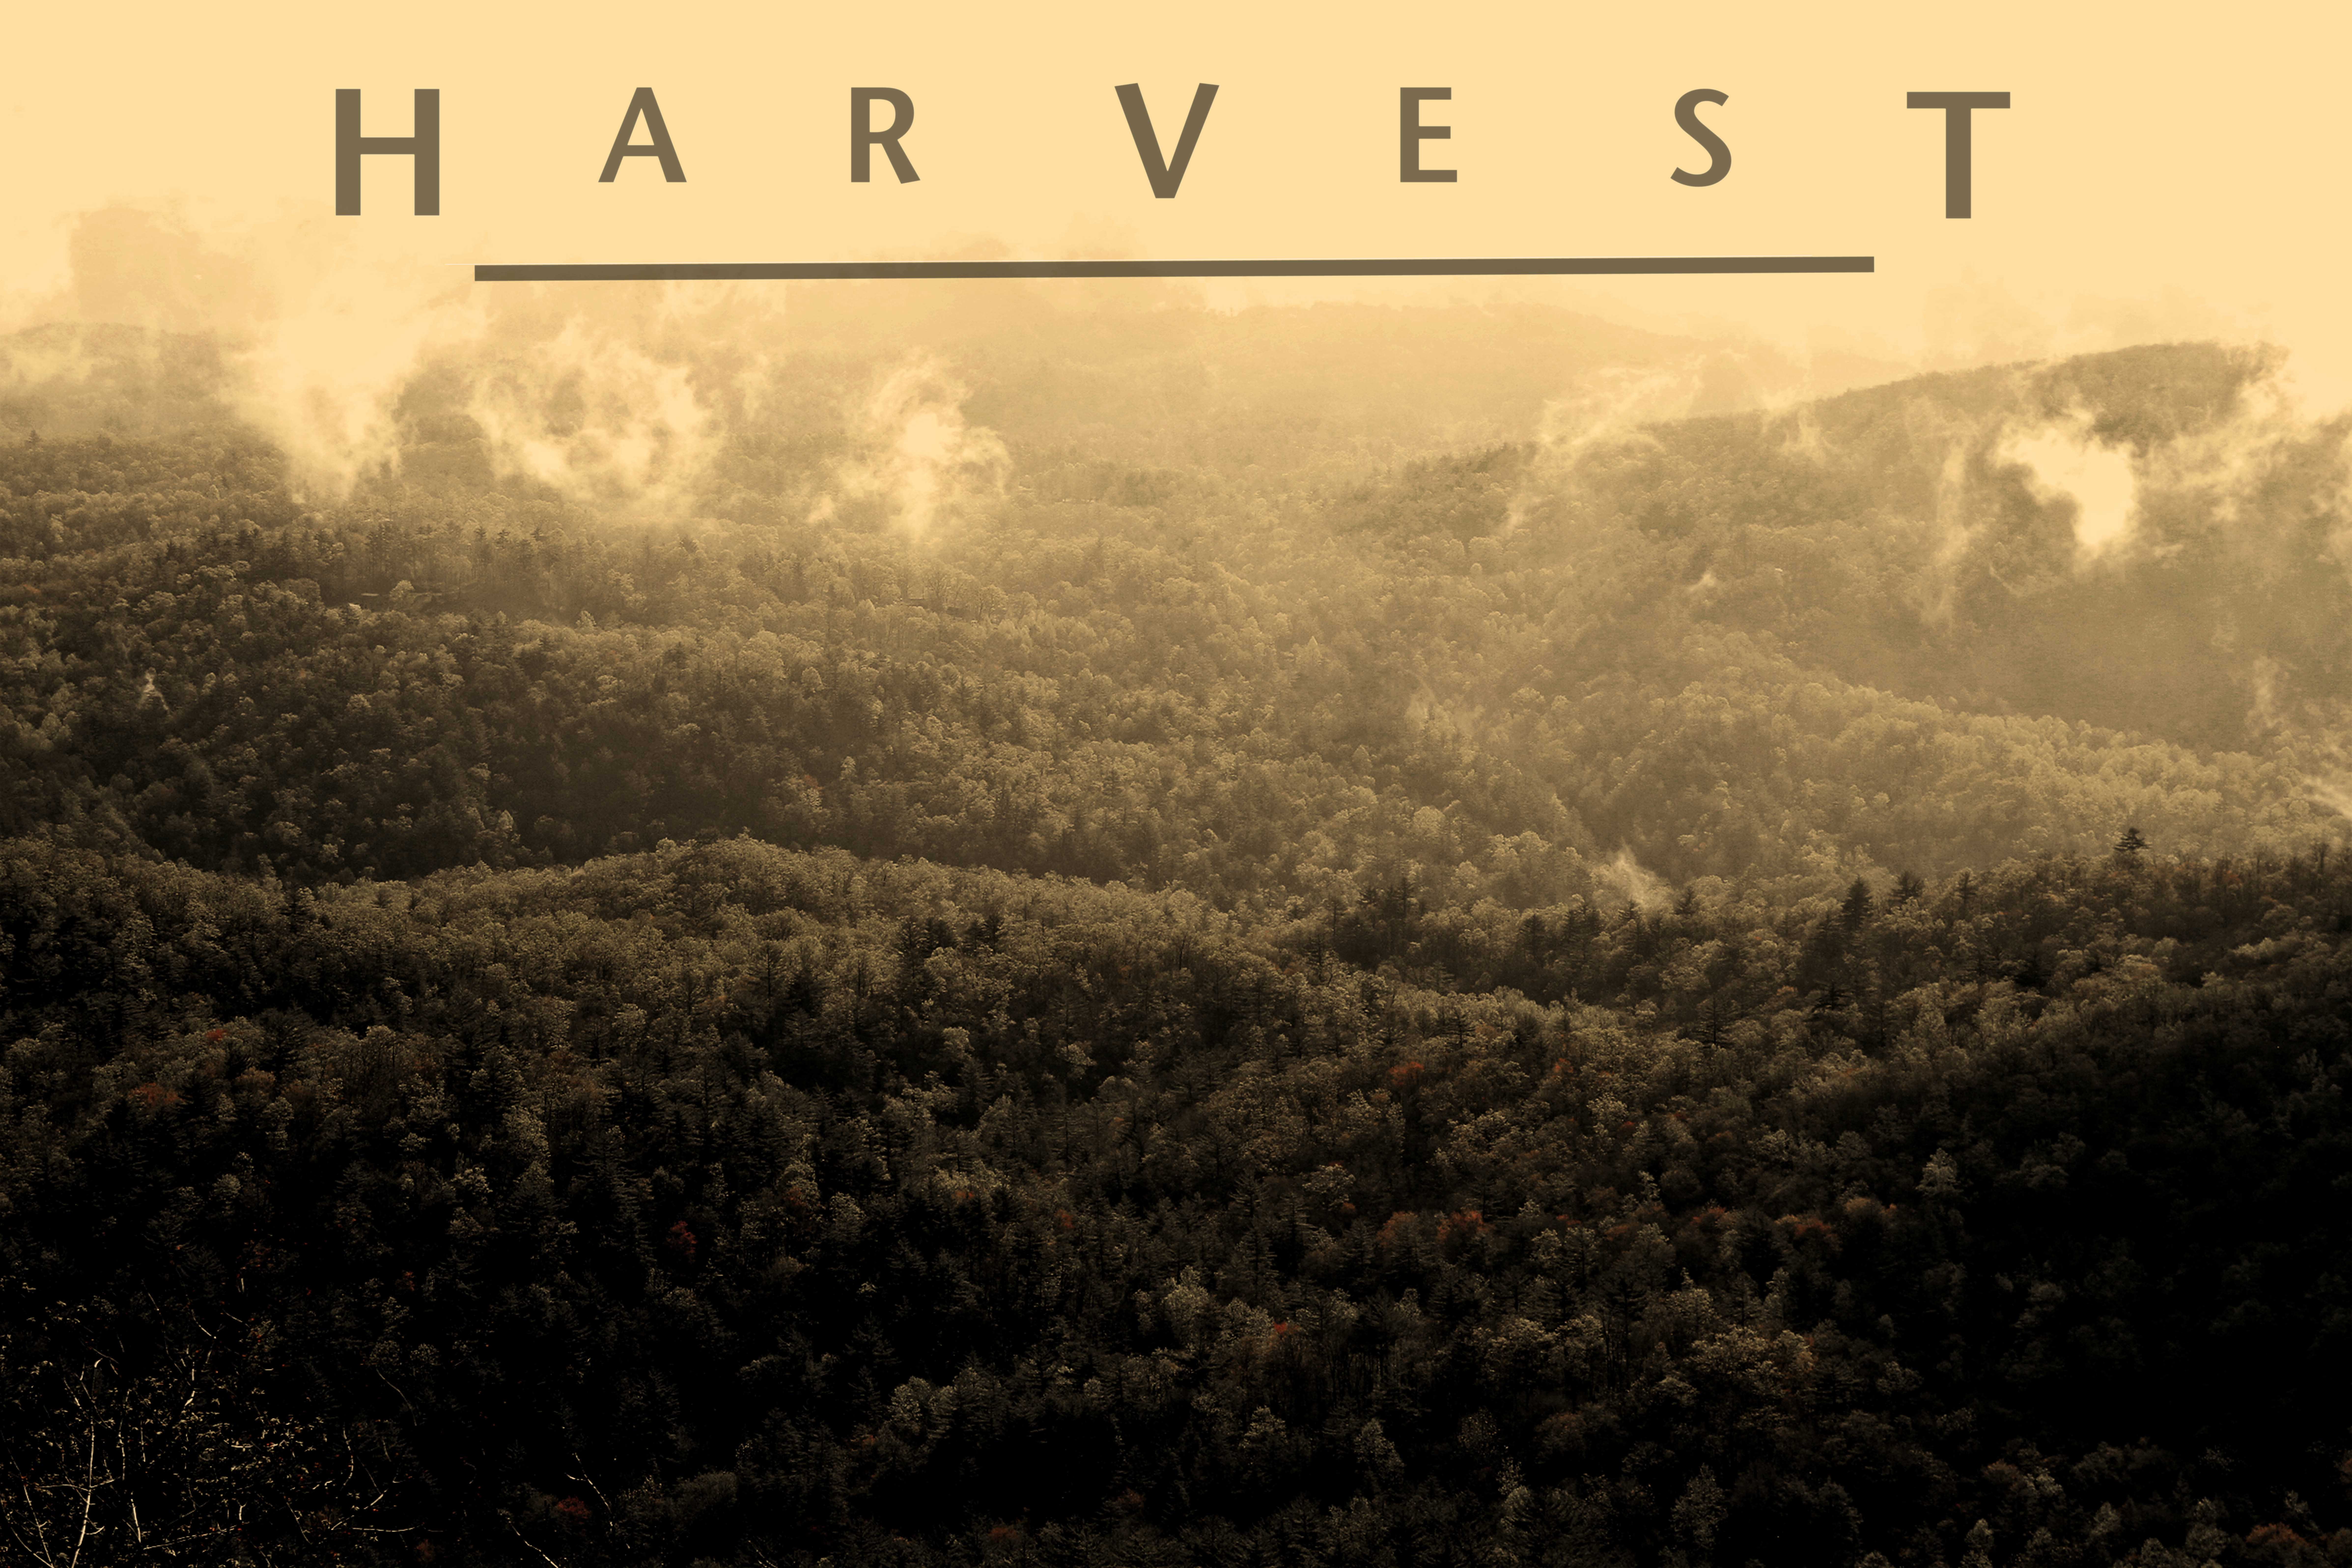 Harvest is Casting